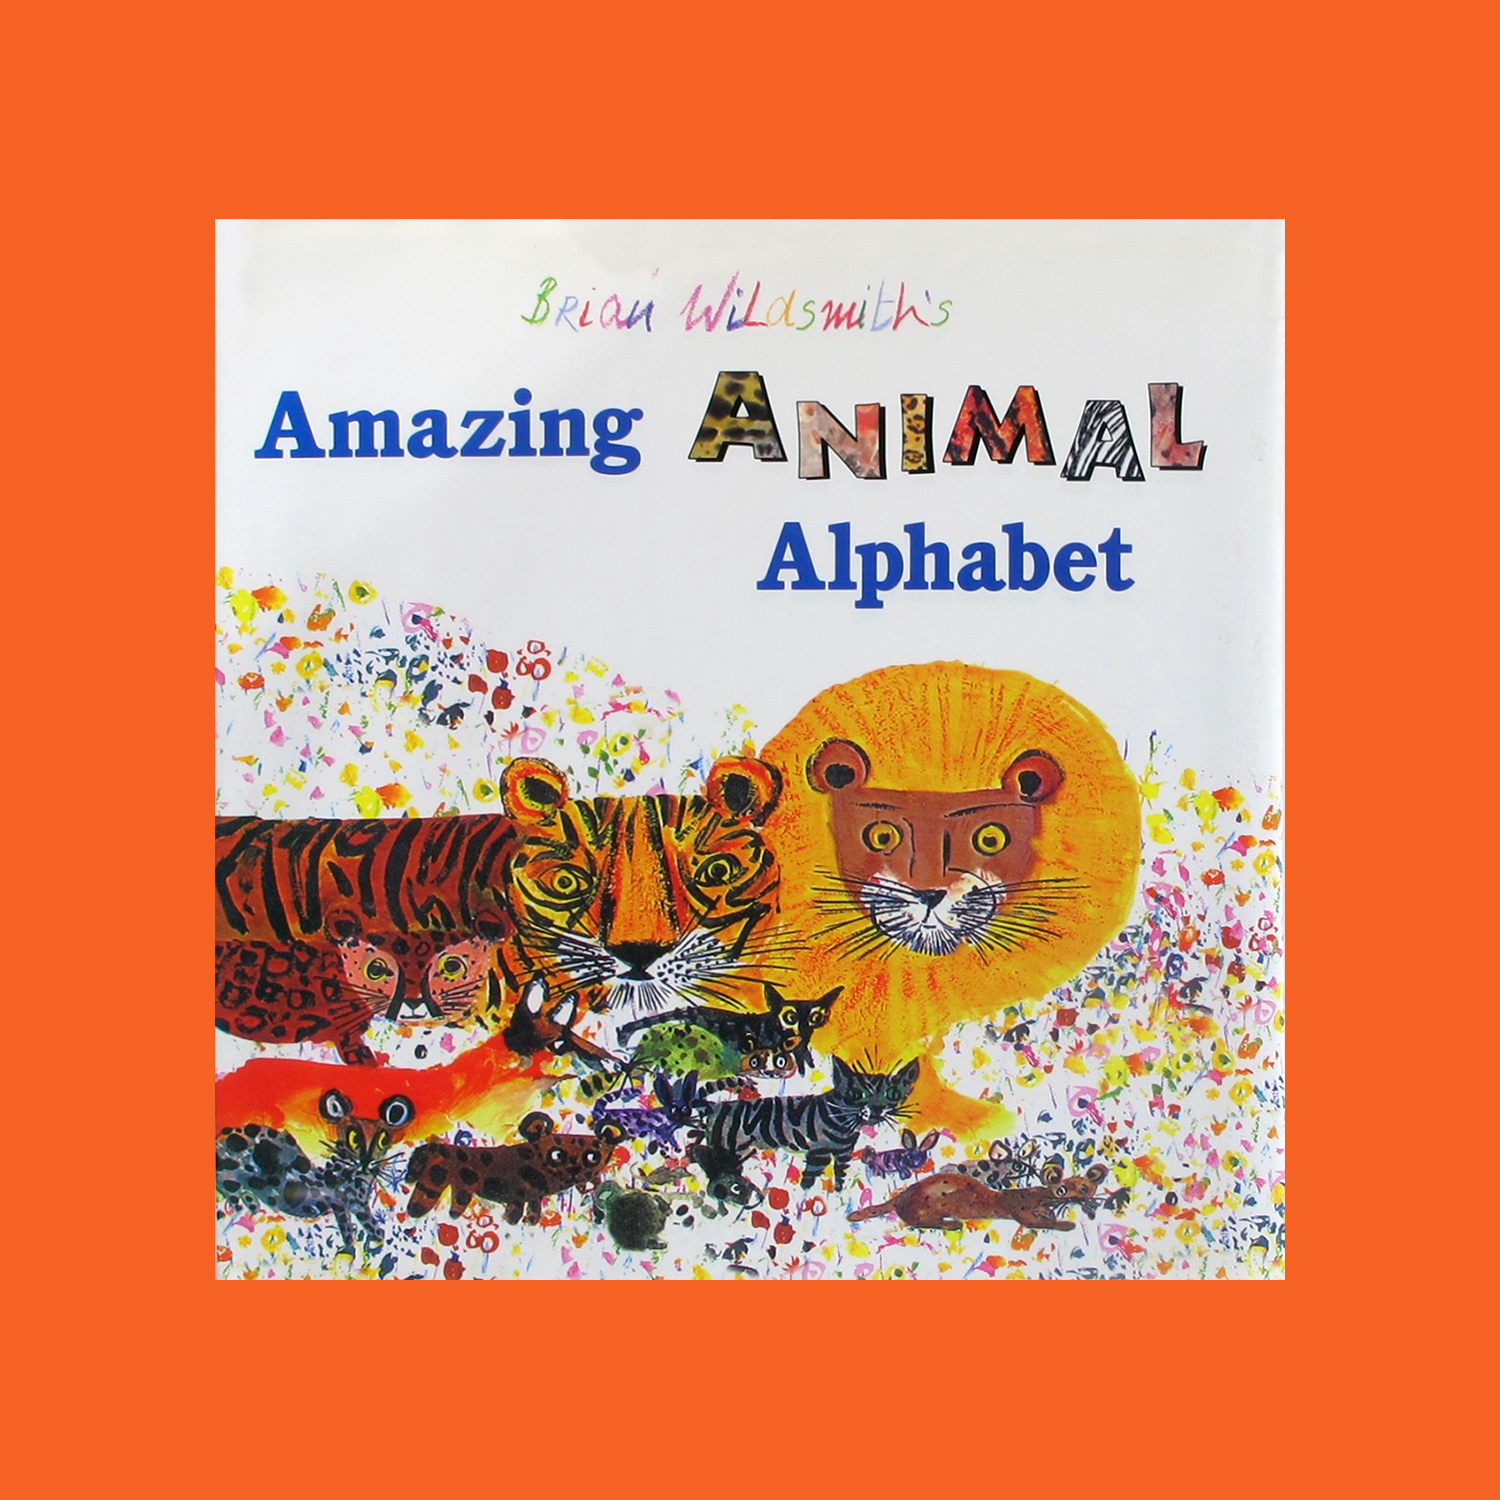 """AMAZING ANIMAL ALPHABET - 2009""""Learn the alphabet on an animal safari! Brian Wildsmith's vibrant illustrations of animals from around the world provide children with a fun and exciting way to learn their ABCs. The amazing facts about animals from A to Z will entertain the entire family.""""Google Books"""